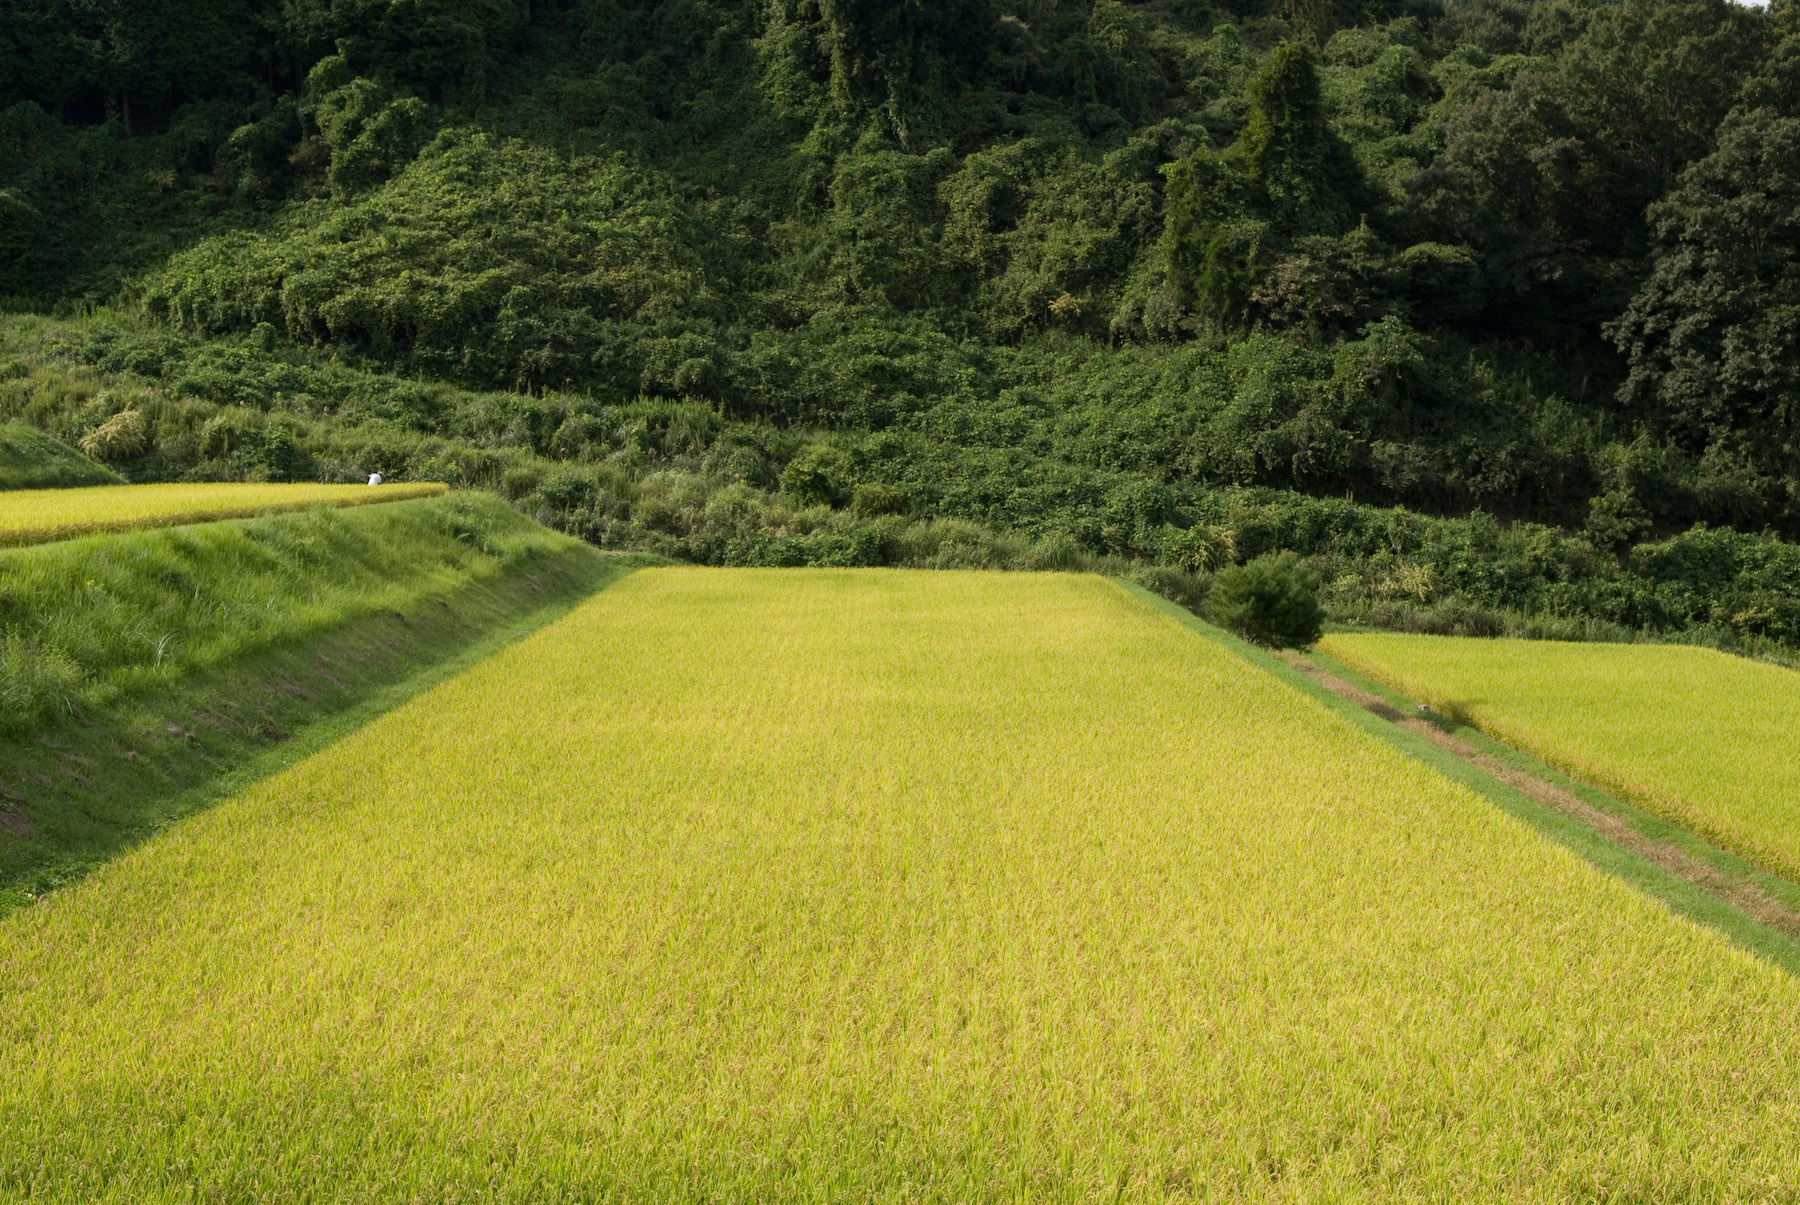 Japanese Terrace Farming